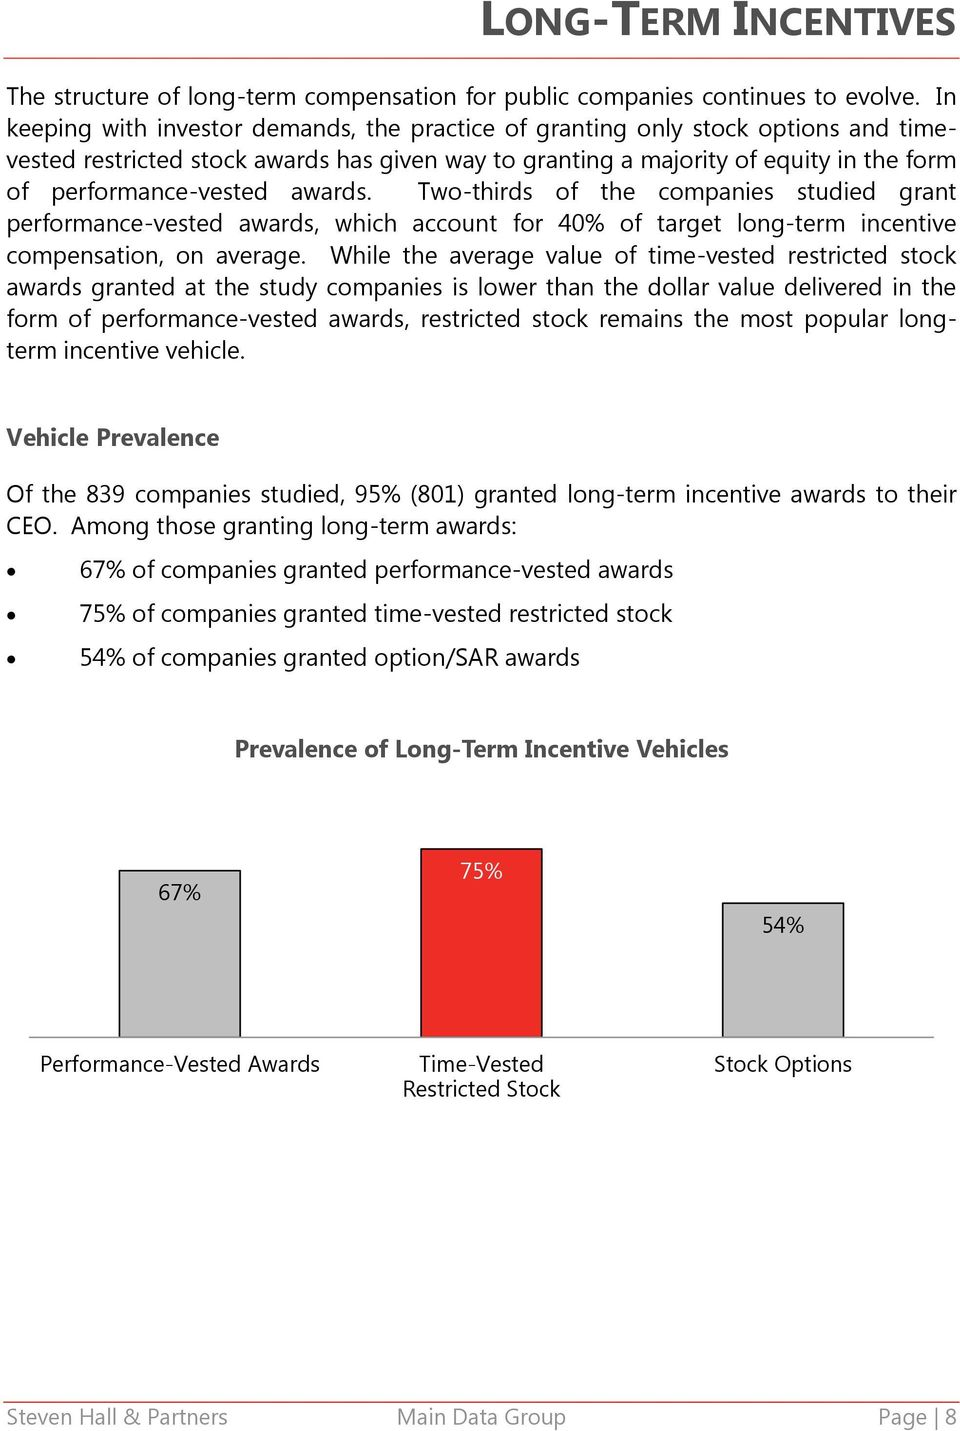 awards. Two-thirds of the companies studied grant performance-vested awards, which account for 40% of target long-term incentive compensation, on average.